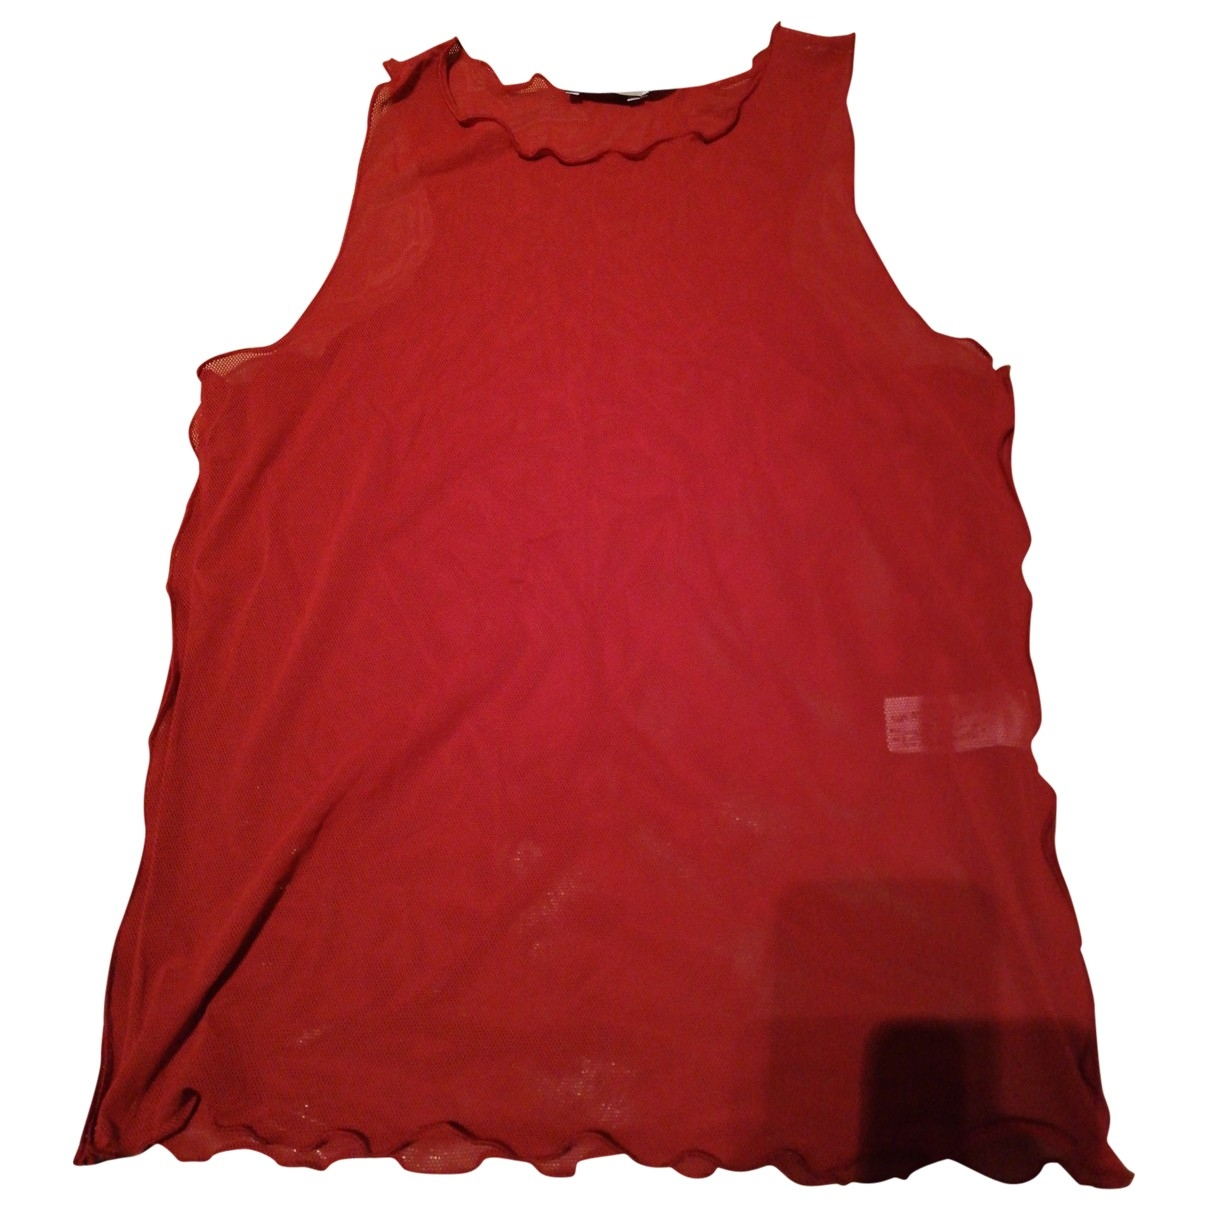 Emporio Armani \N Red  top for Women 42 IT